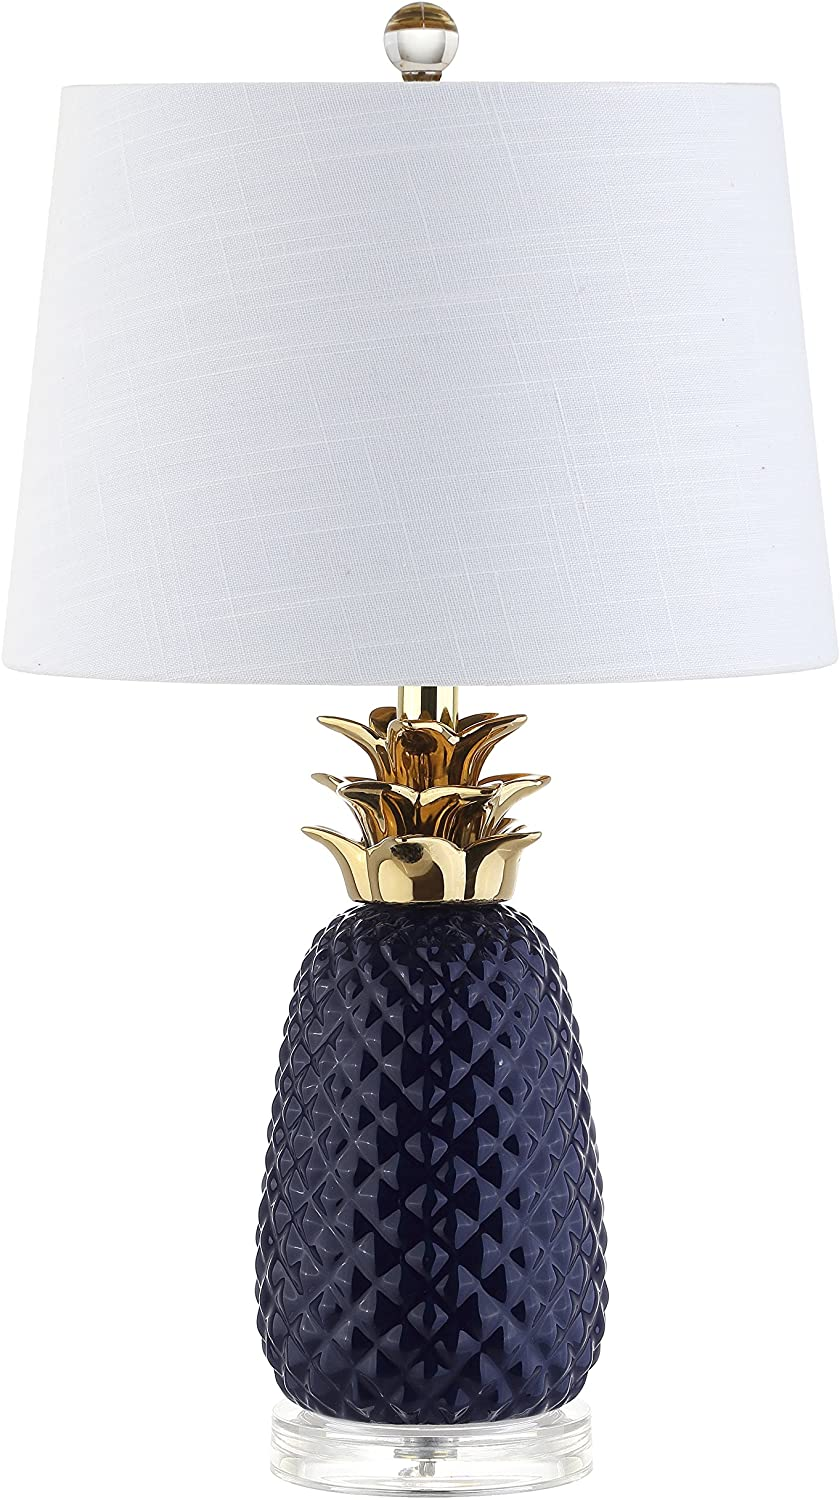 Jonathan Y Jyl4019a Pineapple 23 Ceramic Led Table Lamp Contemporary Transitional For Bedroom Living Room Office College Dorm Coffee Table Bookcase Navy Gold Amazon Com